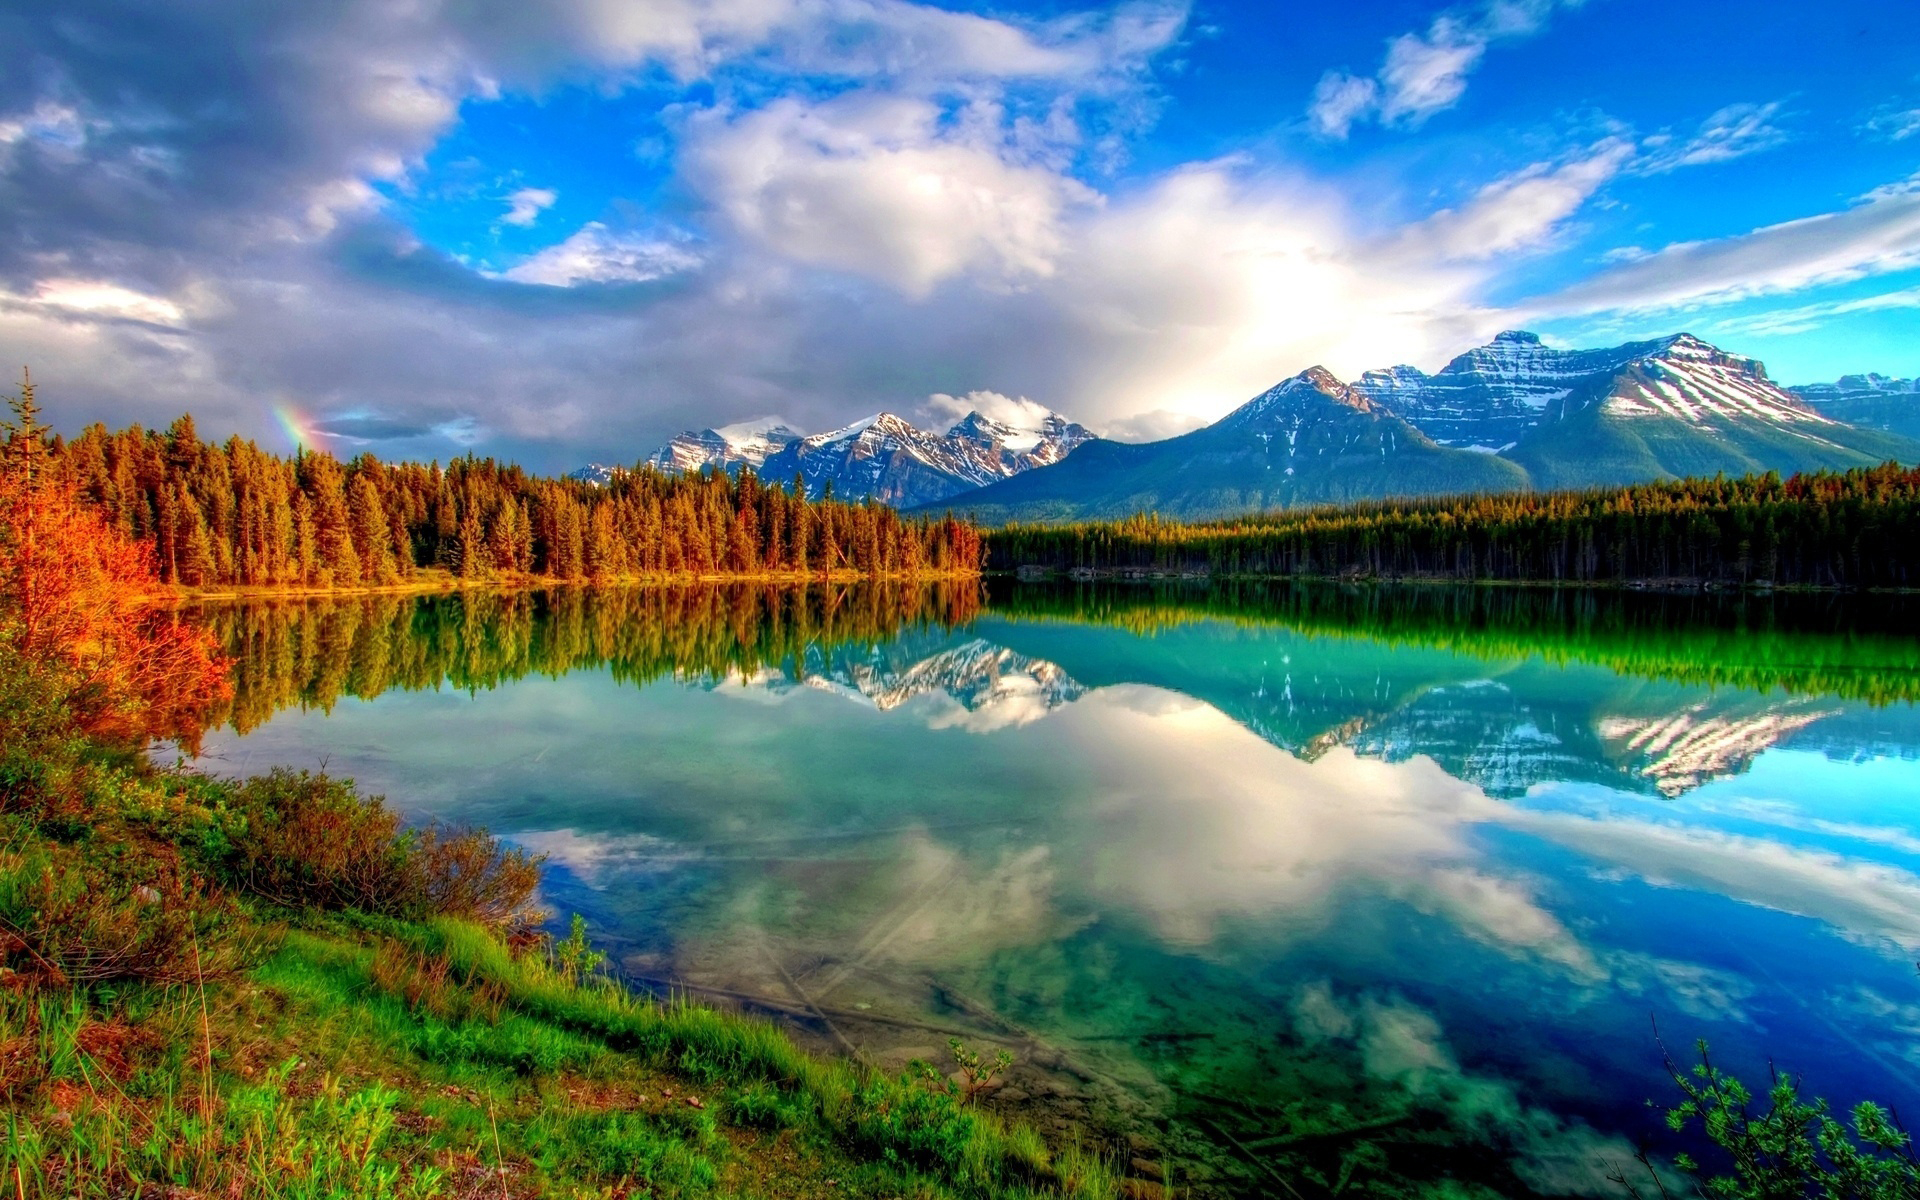 Beautiful Scenery Wallpapers HD Pictures One HD Wallpaper Pictures 1920x1200